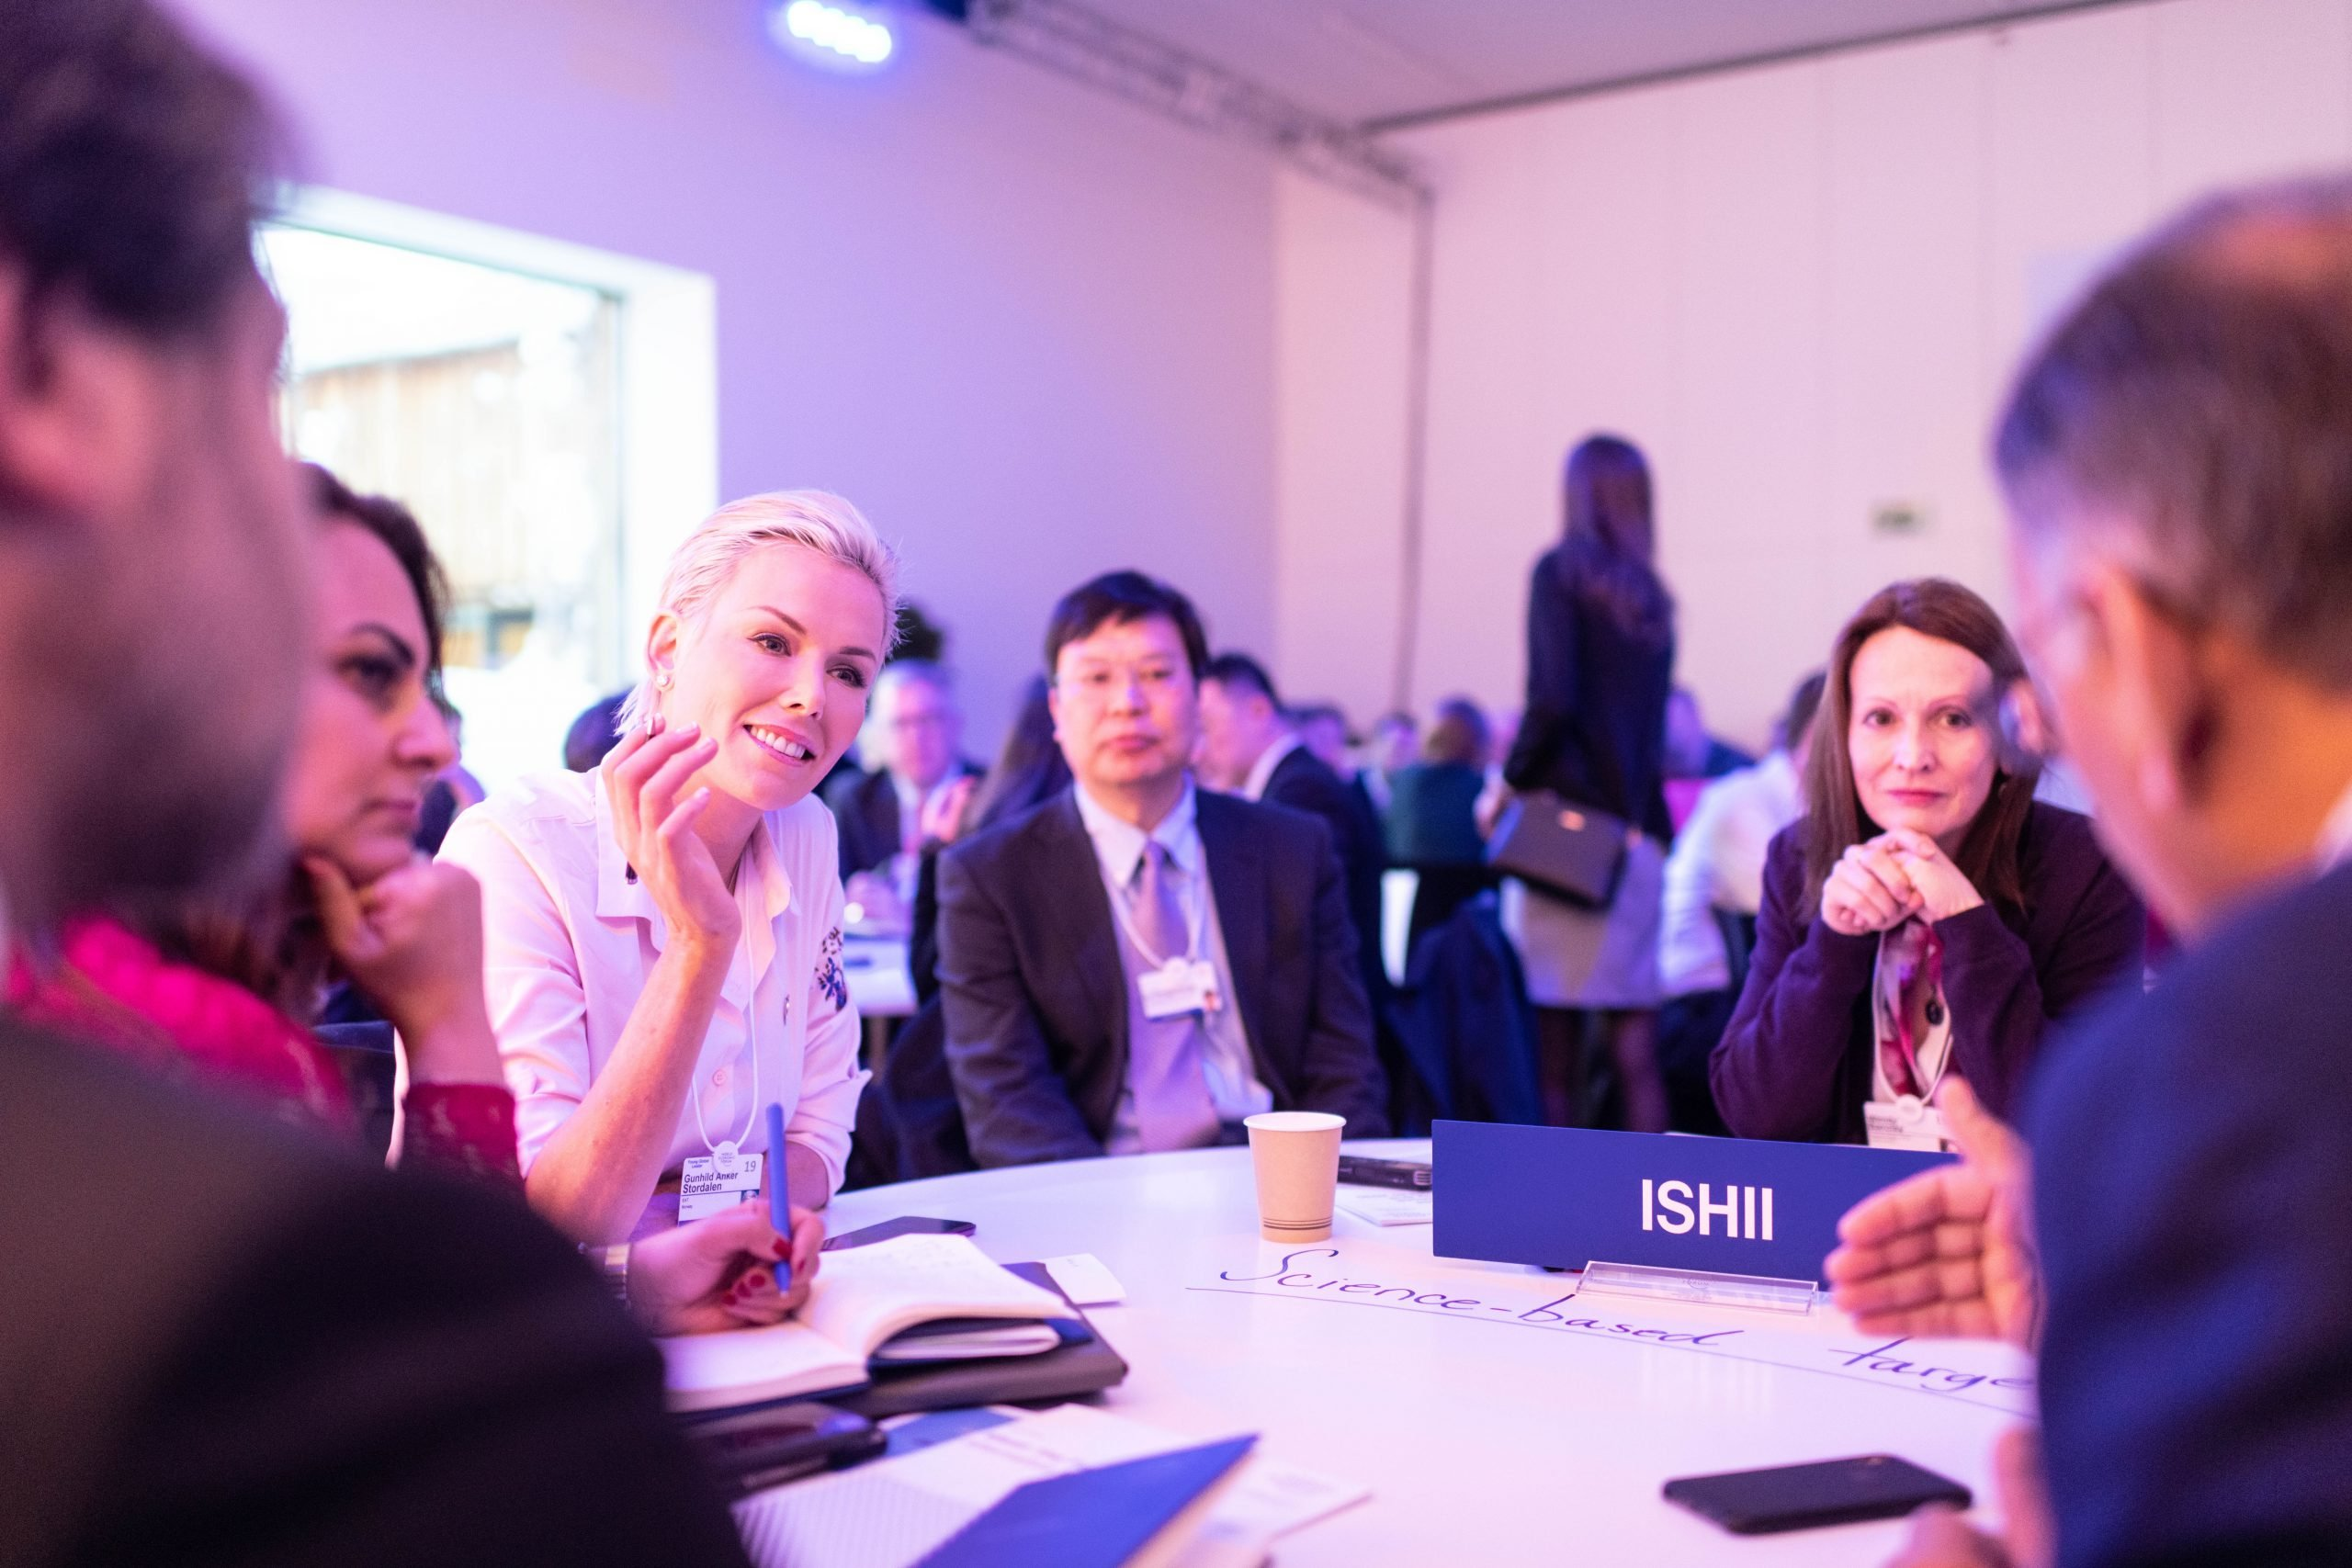 How to Get the Most Out of a Speed Networking Event